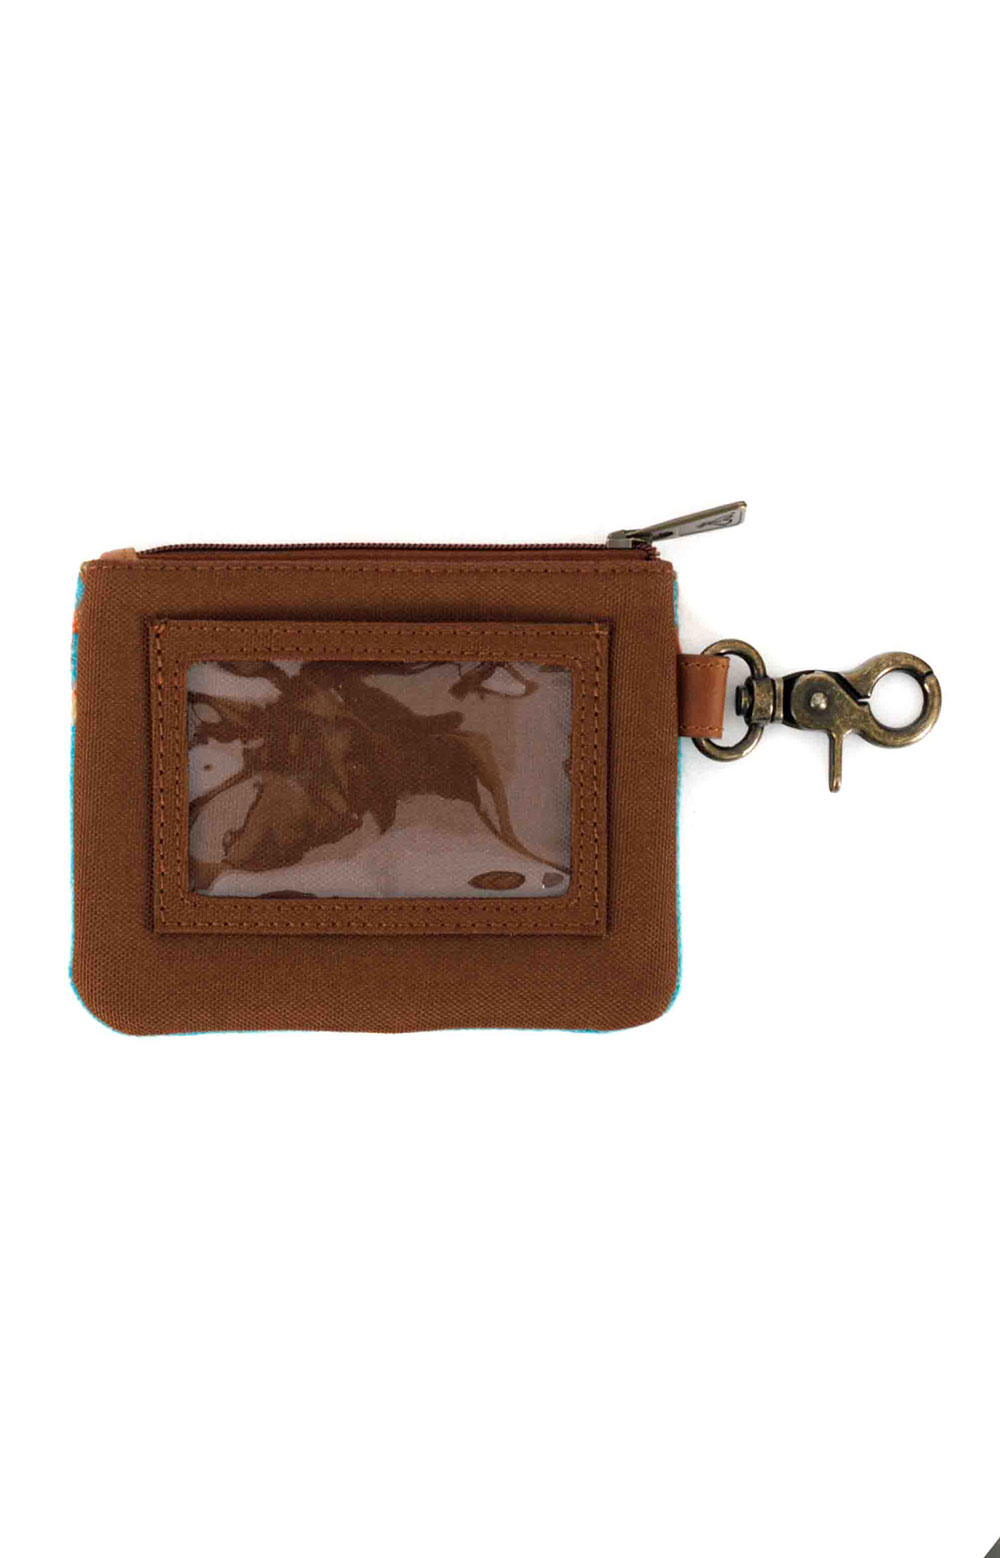 ID Pouch - Journey West 2